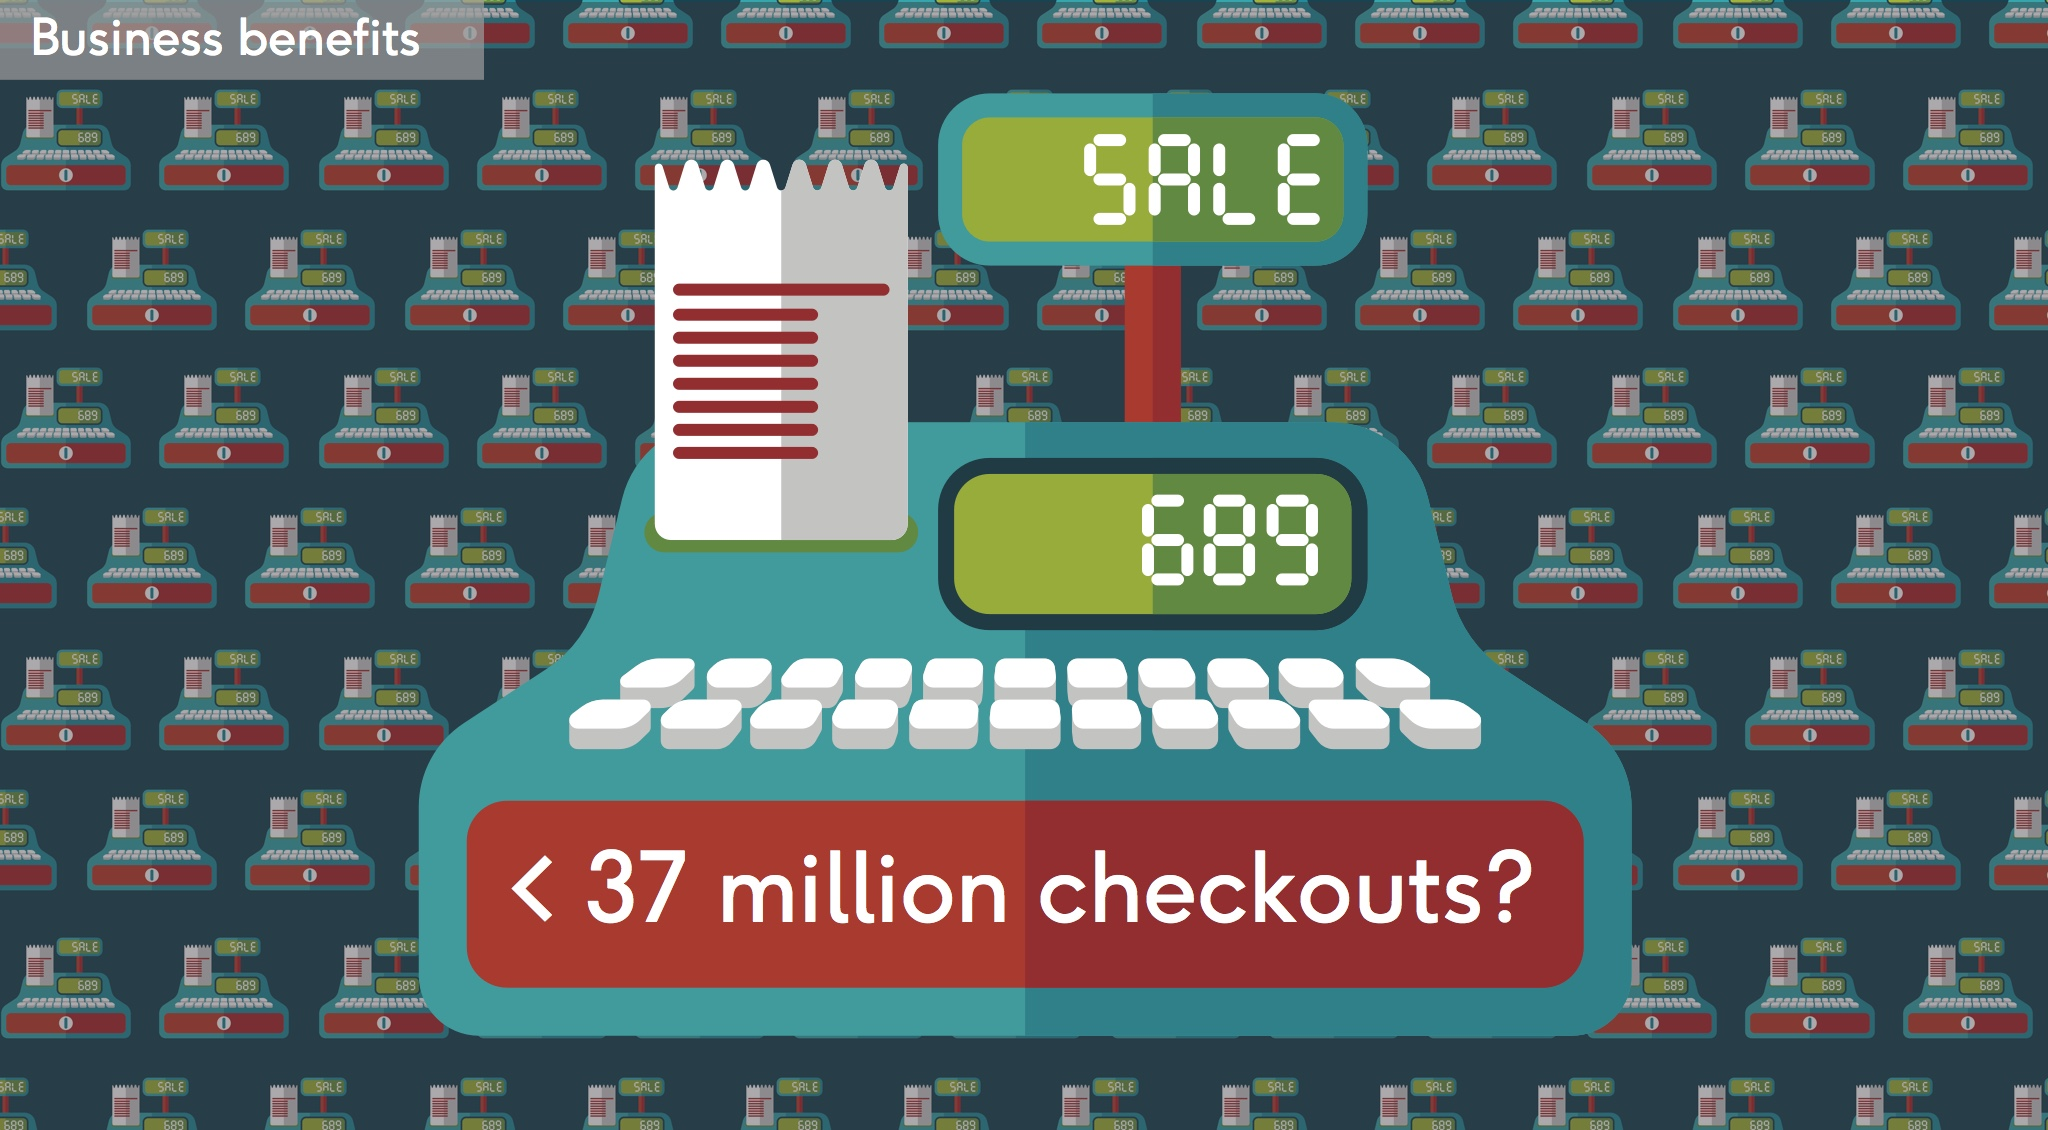 Business benefit: More than 37 million checkouts?